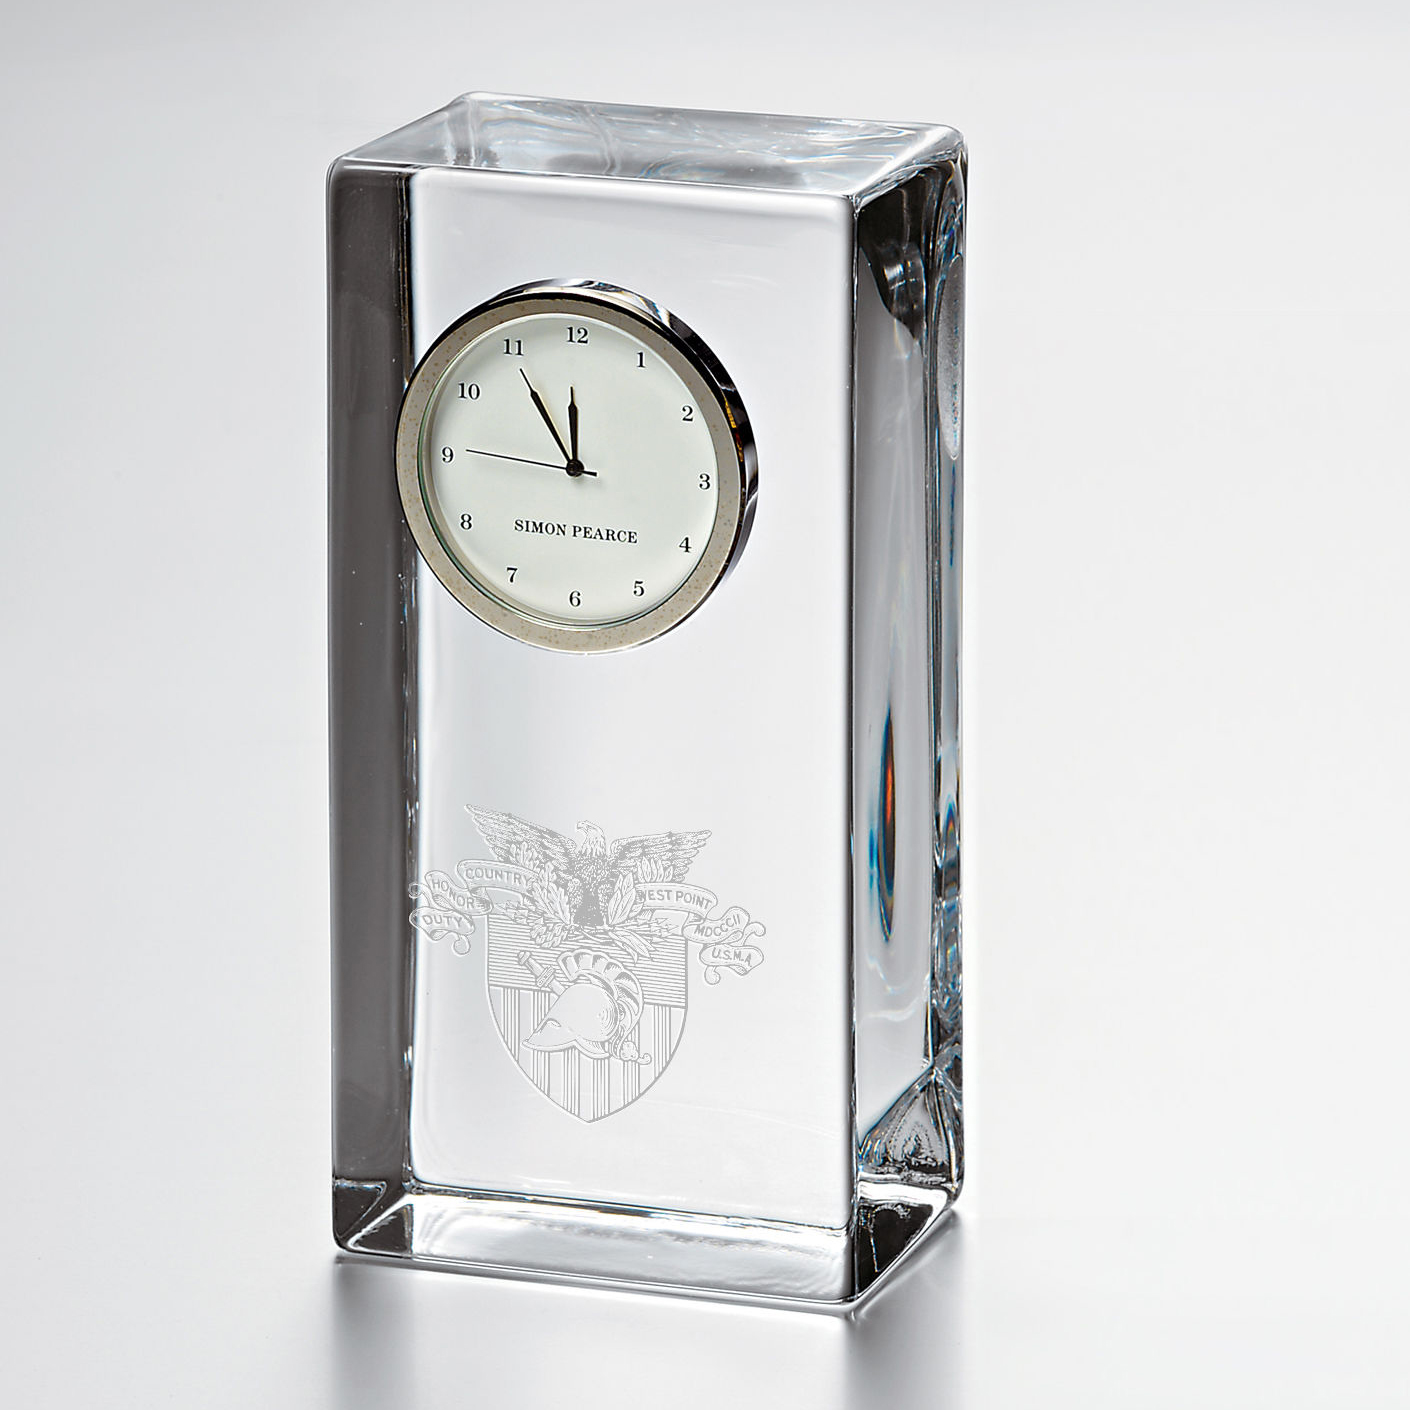 West Point Tall Glass Desk Clock by Simon Pearce